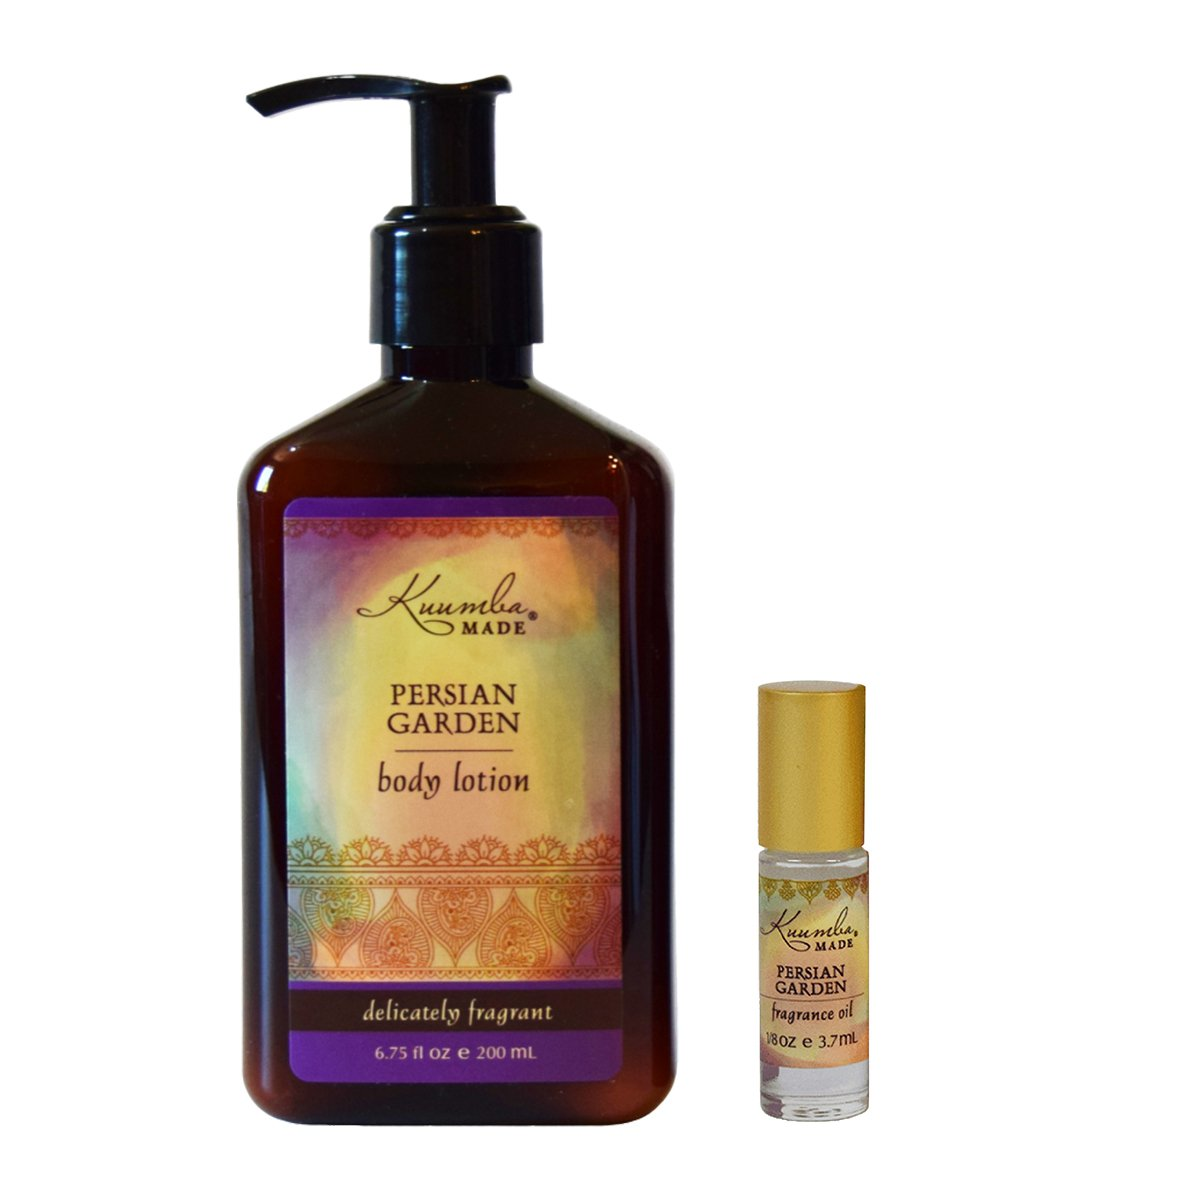 Kuumba Made Fragrance Gift Set, One Persian Garden 1/8oz Fragrance oil with roll on applicator and One Persian Garden Lotion 6oz